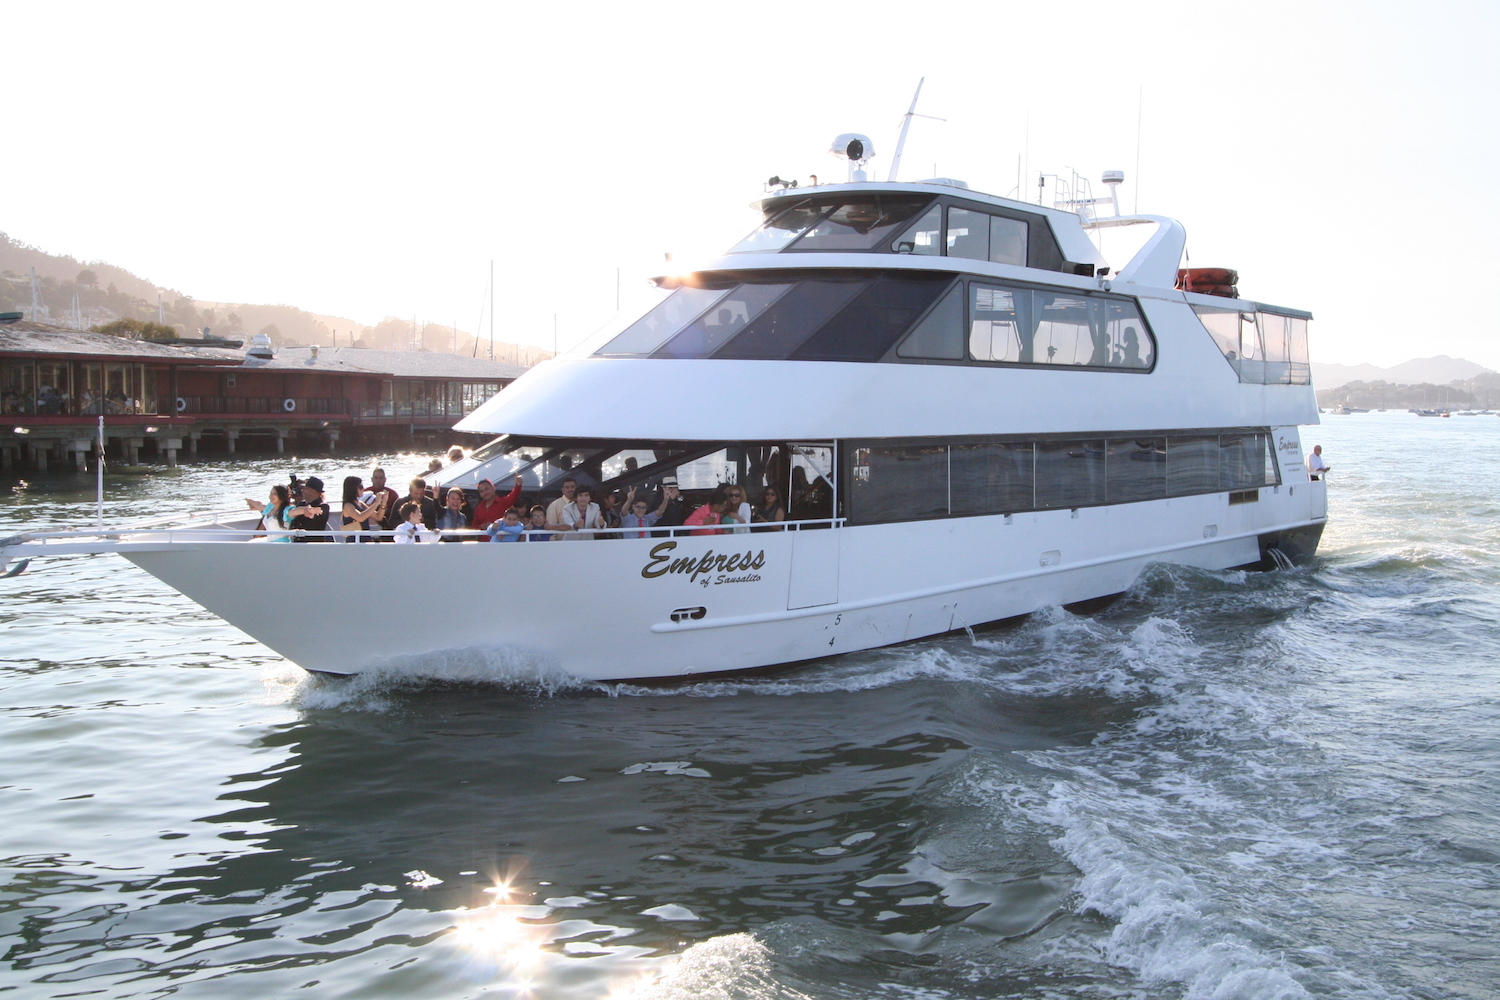 Birthday-party-san-francisco-yacht-event.jpg